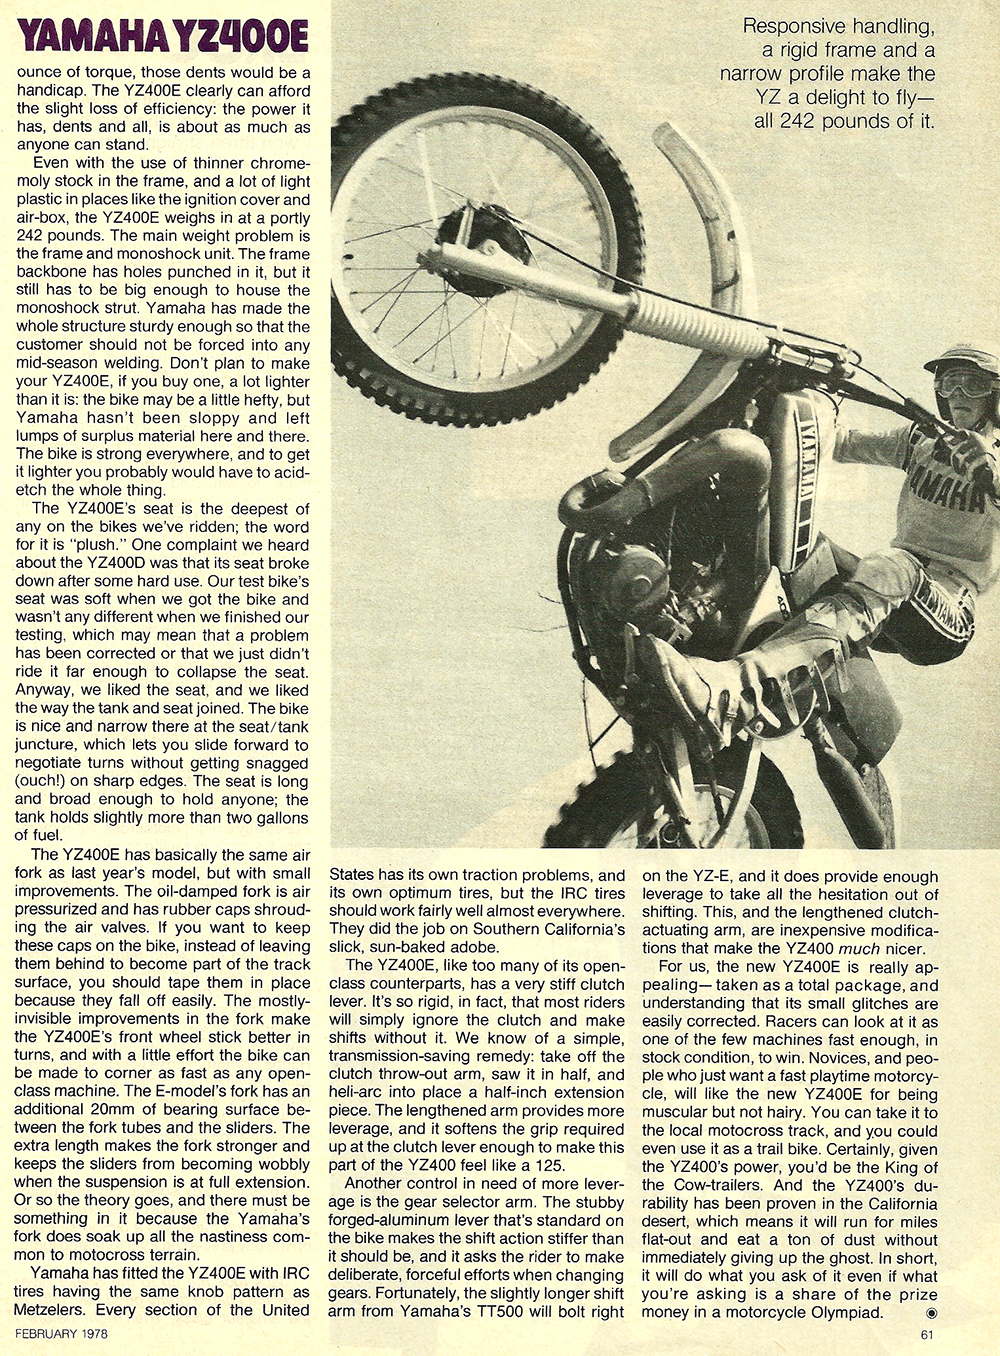 1978 Yamaha YZ400E road test 6.jpg